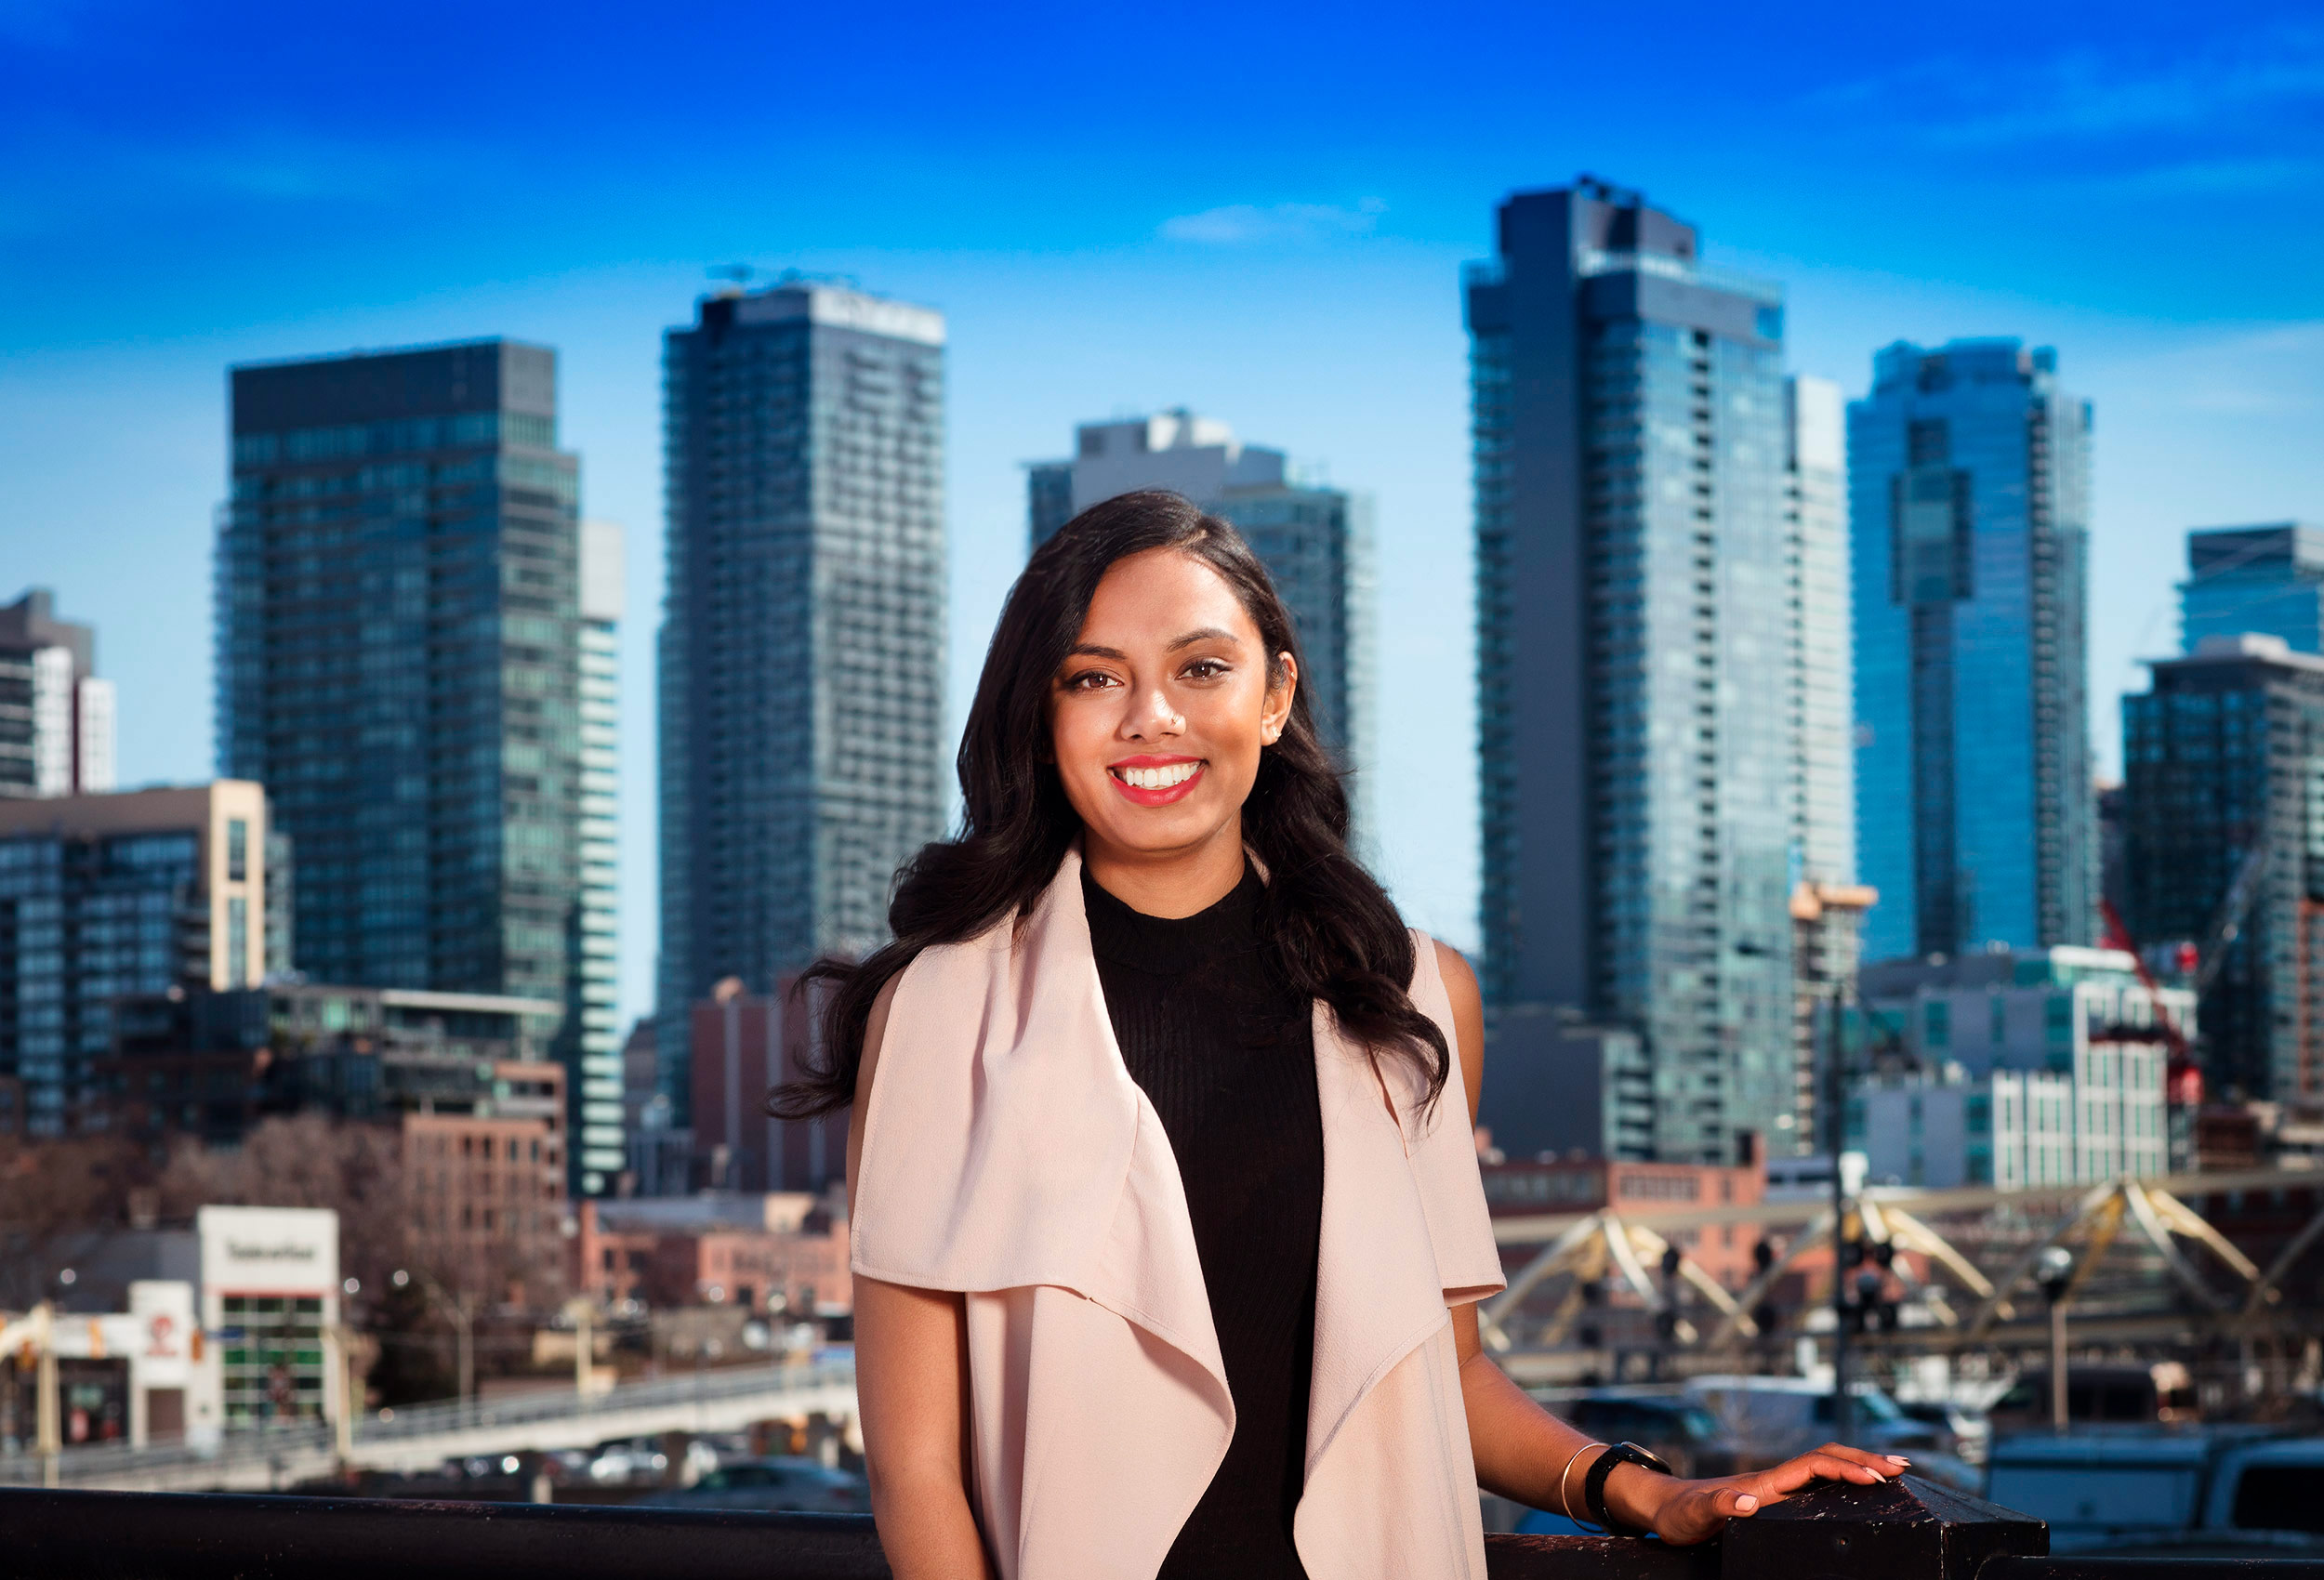 toronto_corporate_business_portrait_by_John_hryniuk